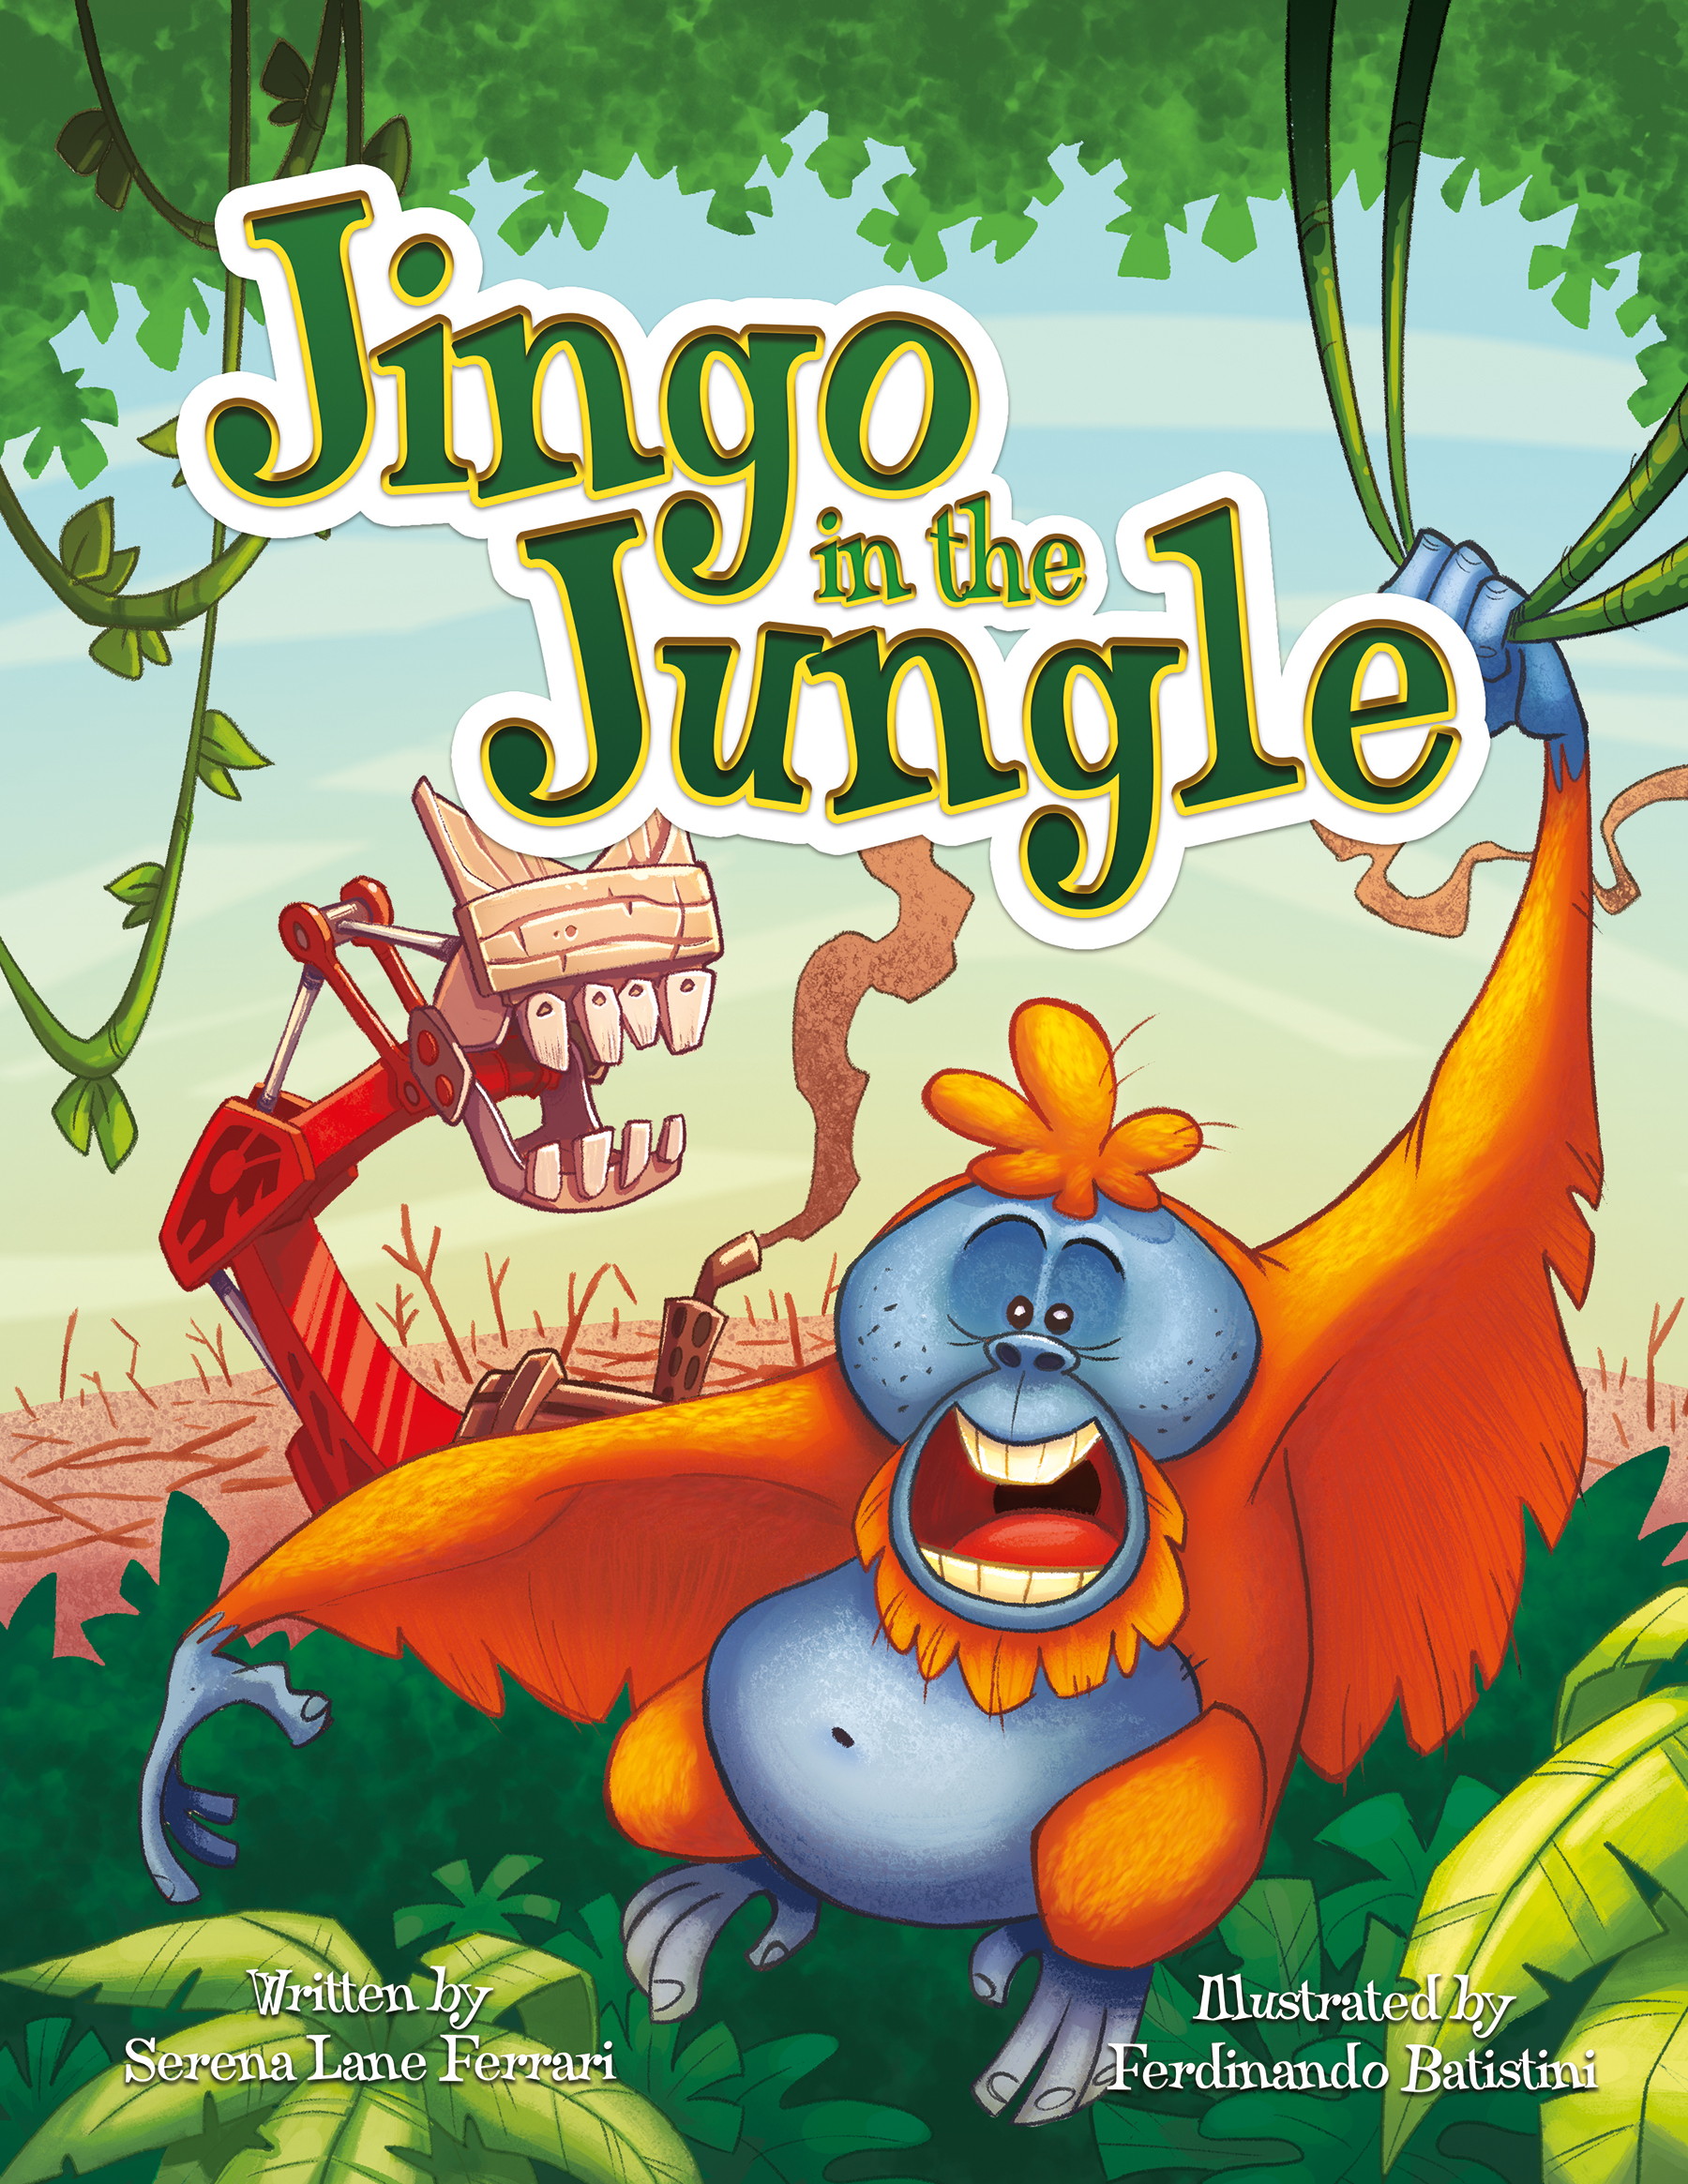 Book Review: Jingo in the Jungle by Serena Lane Ferrari